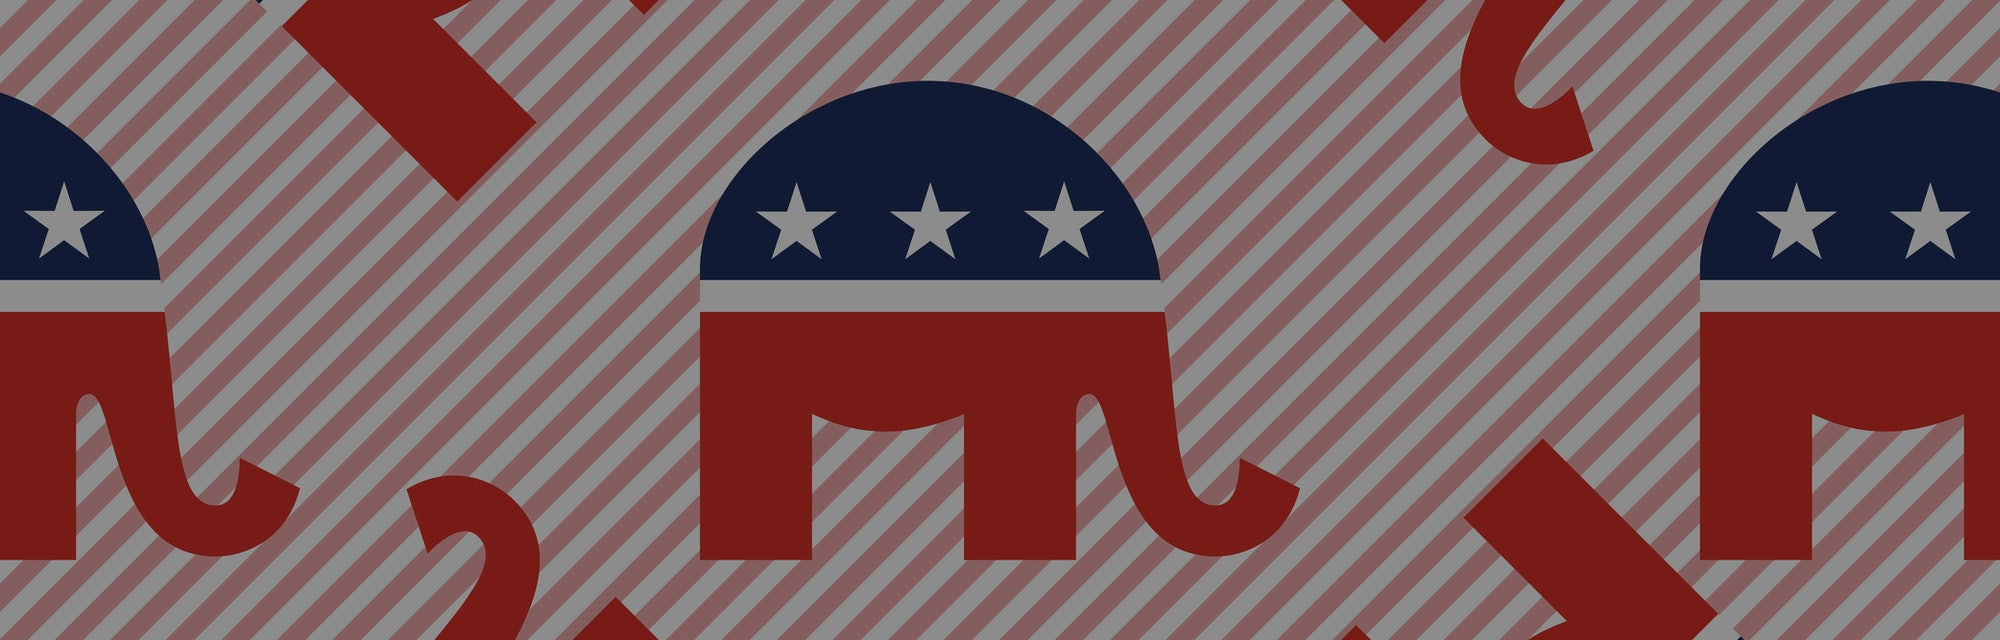 A sheet of stickers showing the Republican elephant in red, white, and blue.